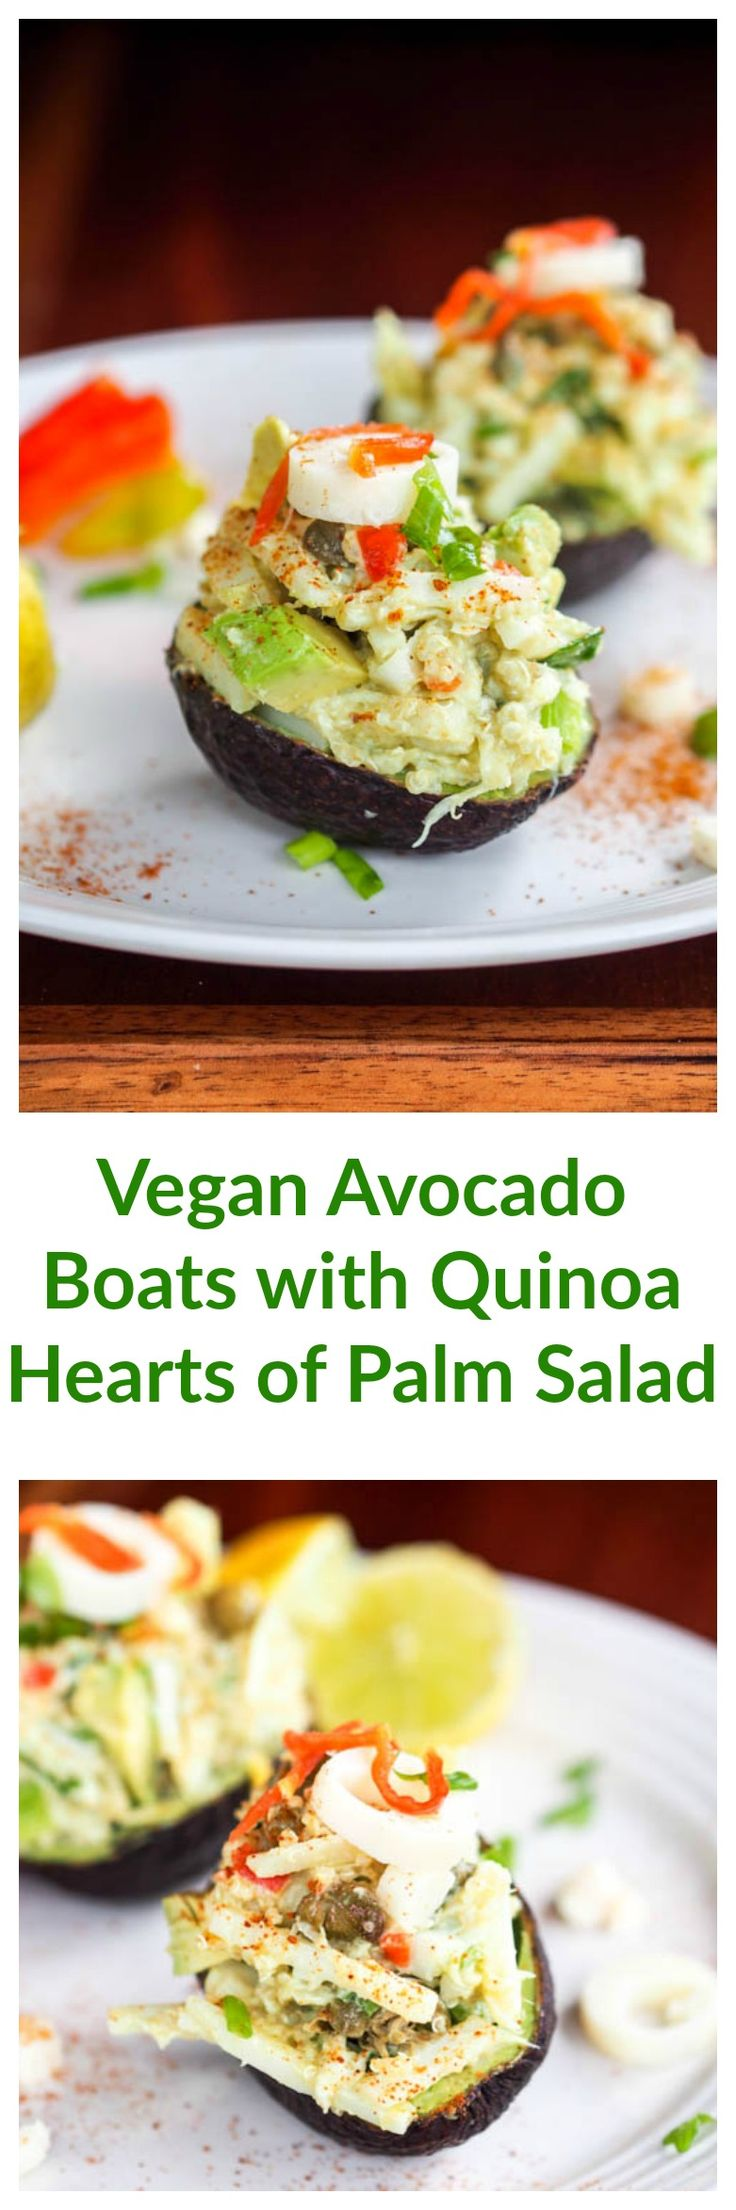 Vegan avocado boats with quinoa hearts of palm salad make for a perfect light dinner or appetizer. Quinoa is mixed with tender thinly sliced hearts of palm, scallions, and drizzled with an avocado mayo. Serve in lightly scooped out avocado halves for a sophisticated yet easy to make meal.